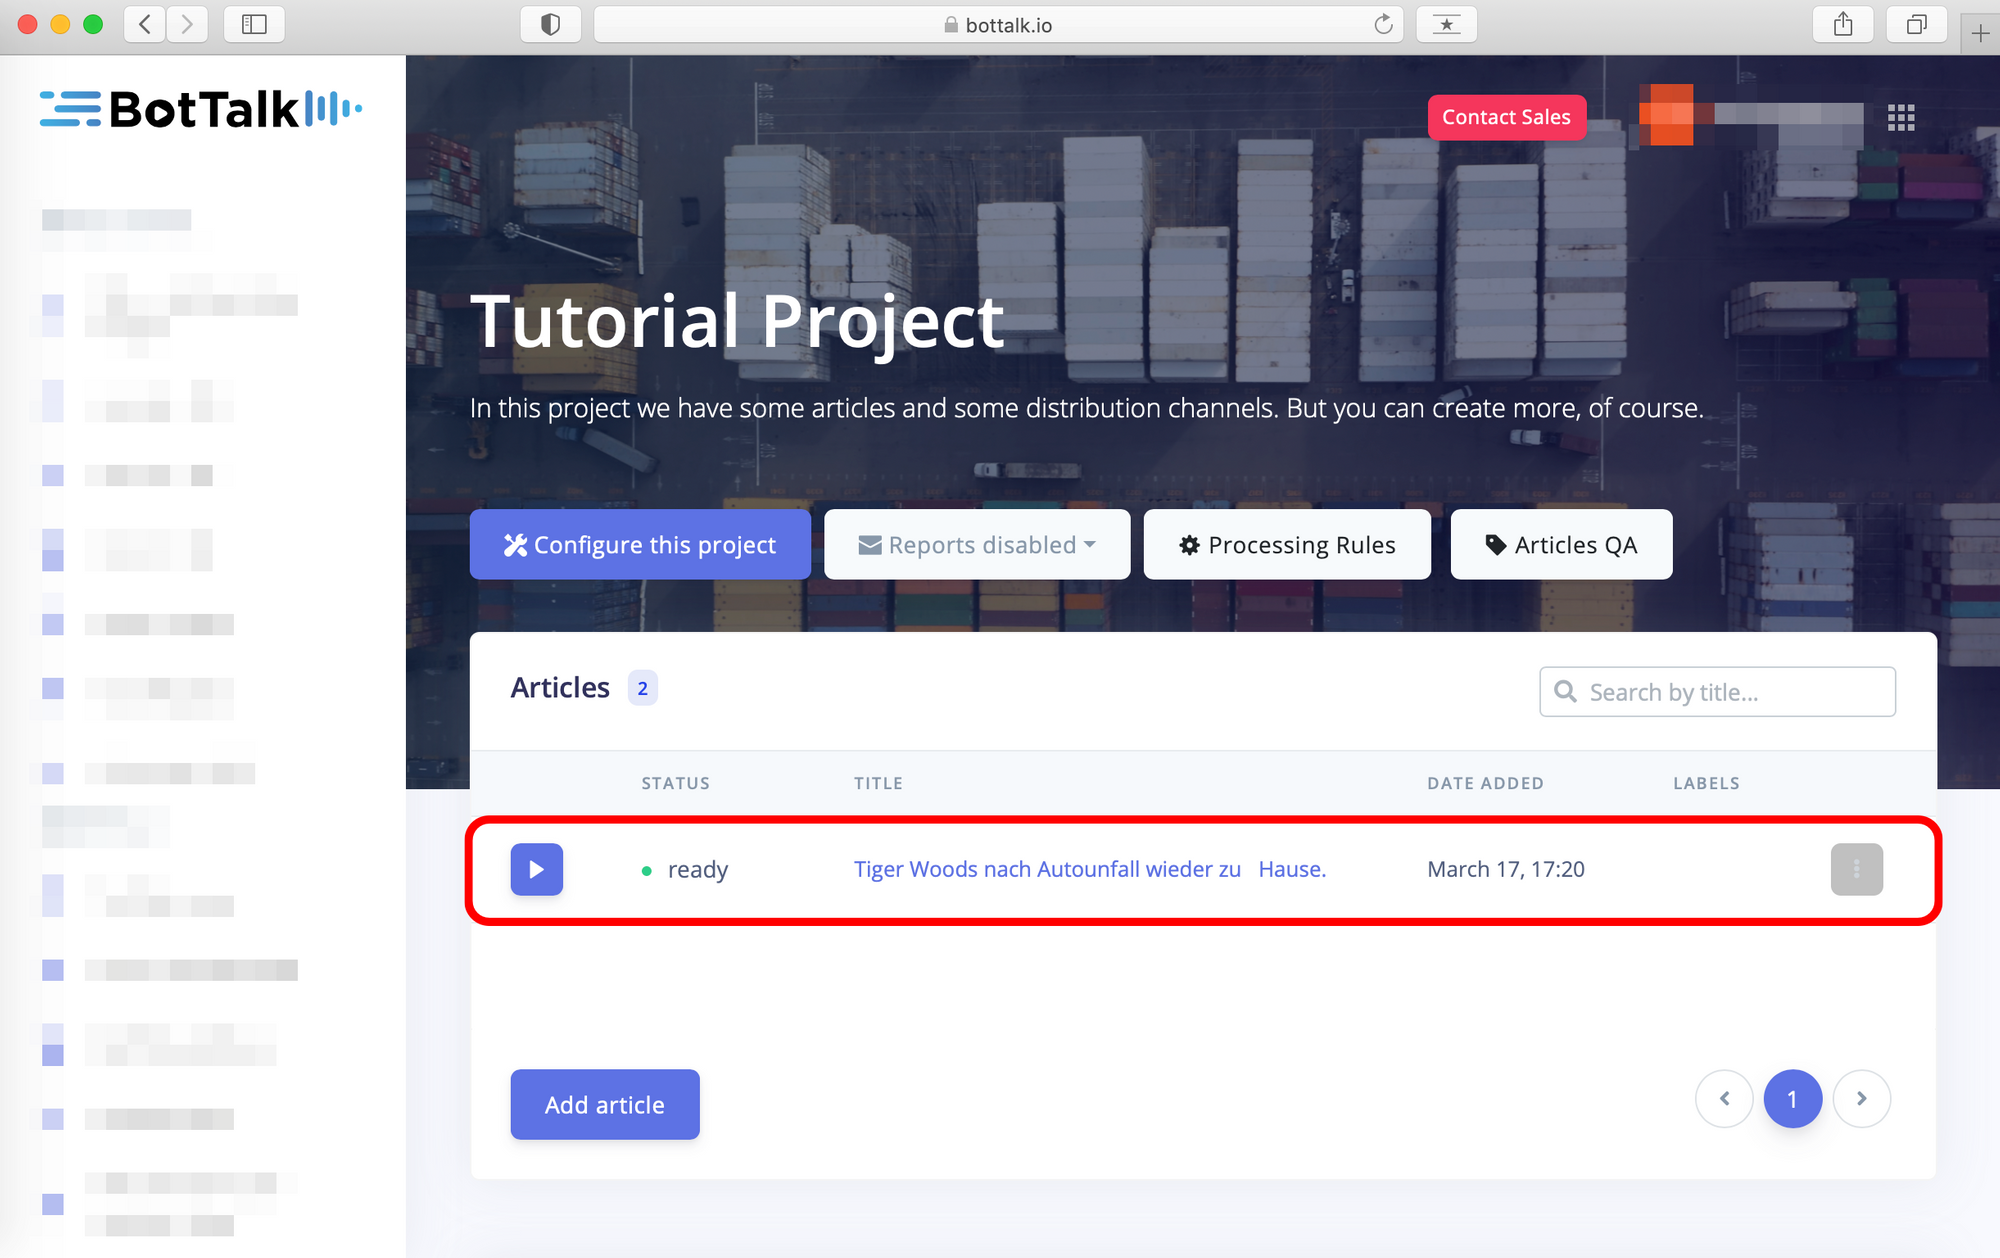 Project inside BotTalk text-to-speech platform, Here you can see our tutorial project inside the BotTalk platform